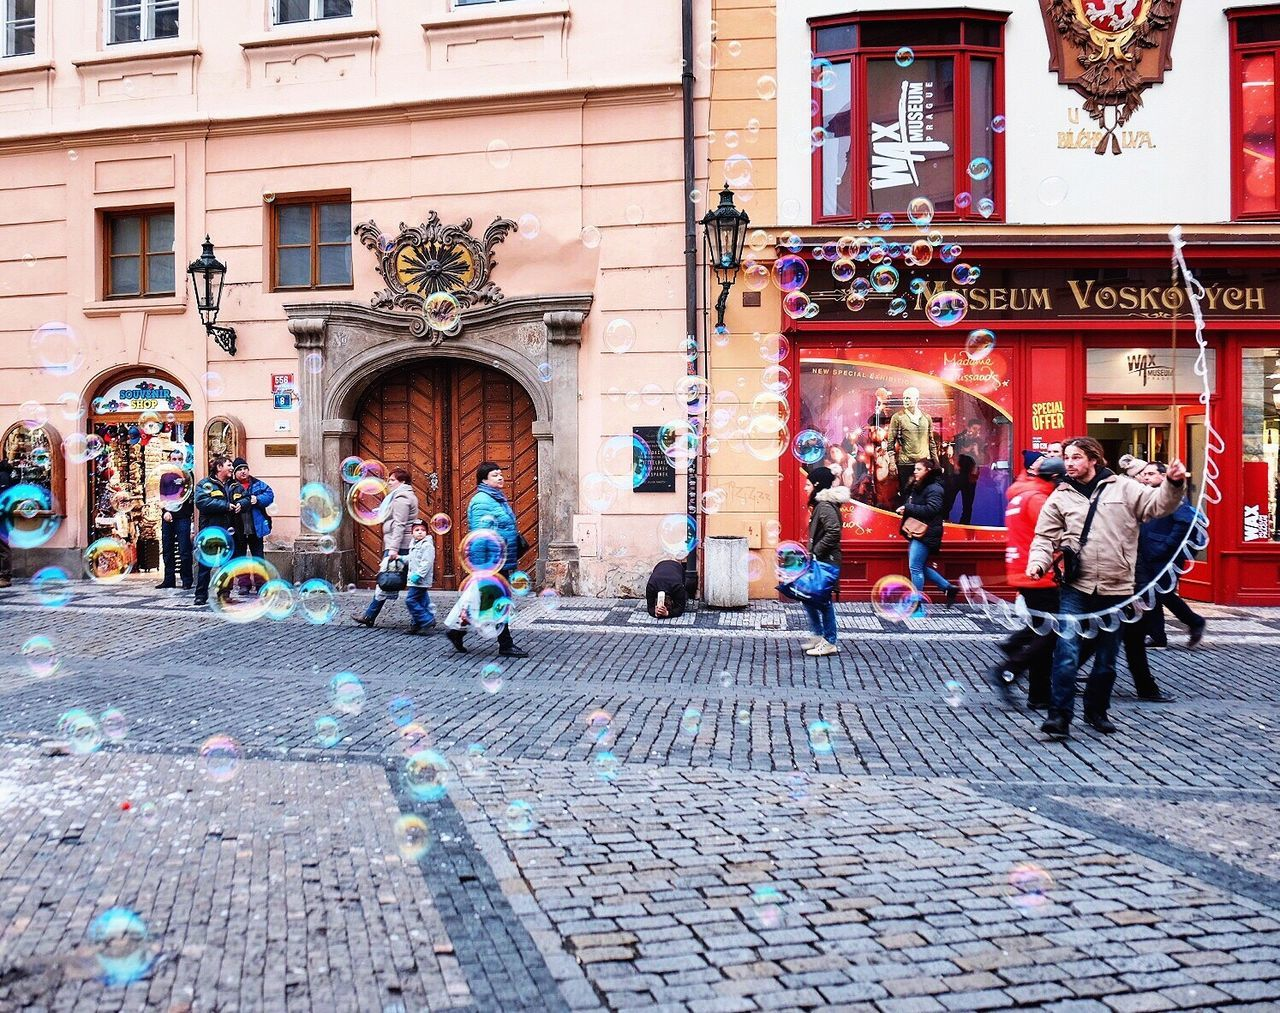 architecture, cobblestone, building exterior, street, real people, built structure, outdoors, men, large group of people, day, city, people